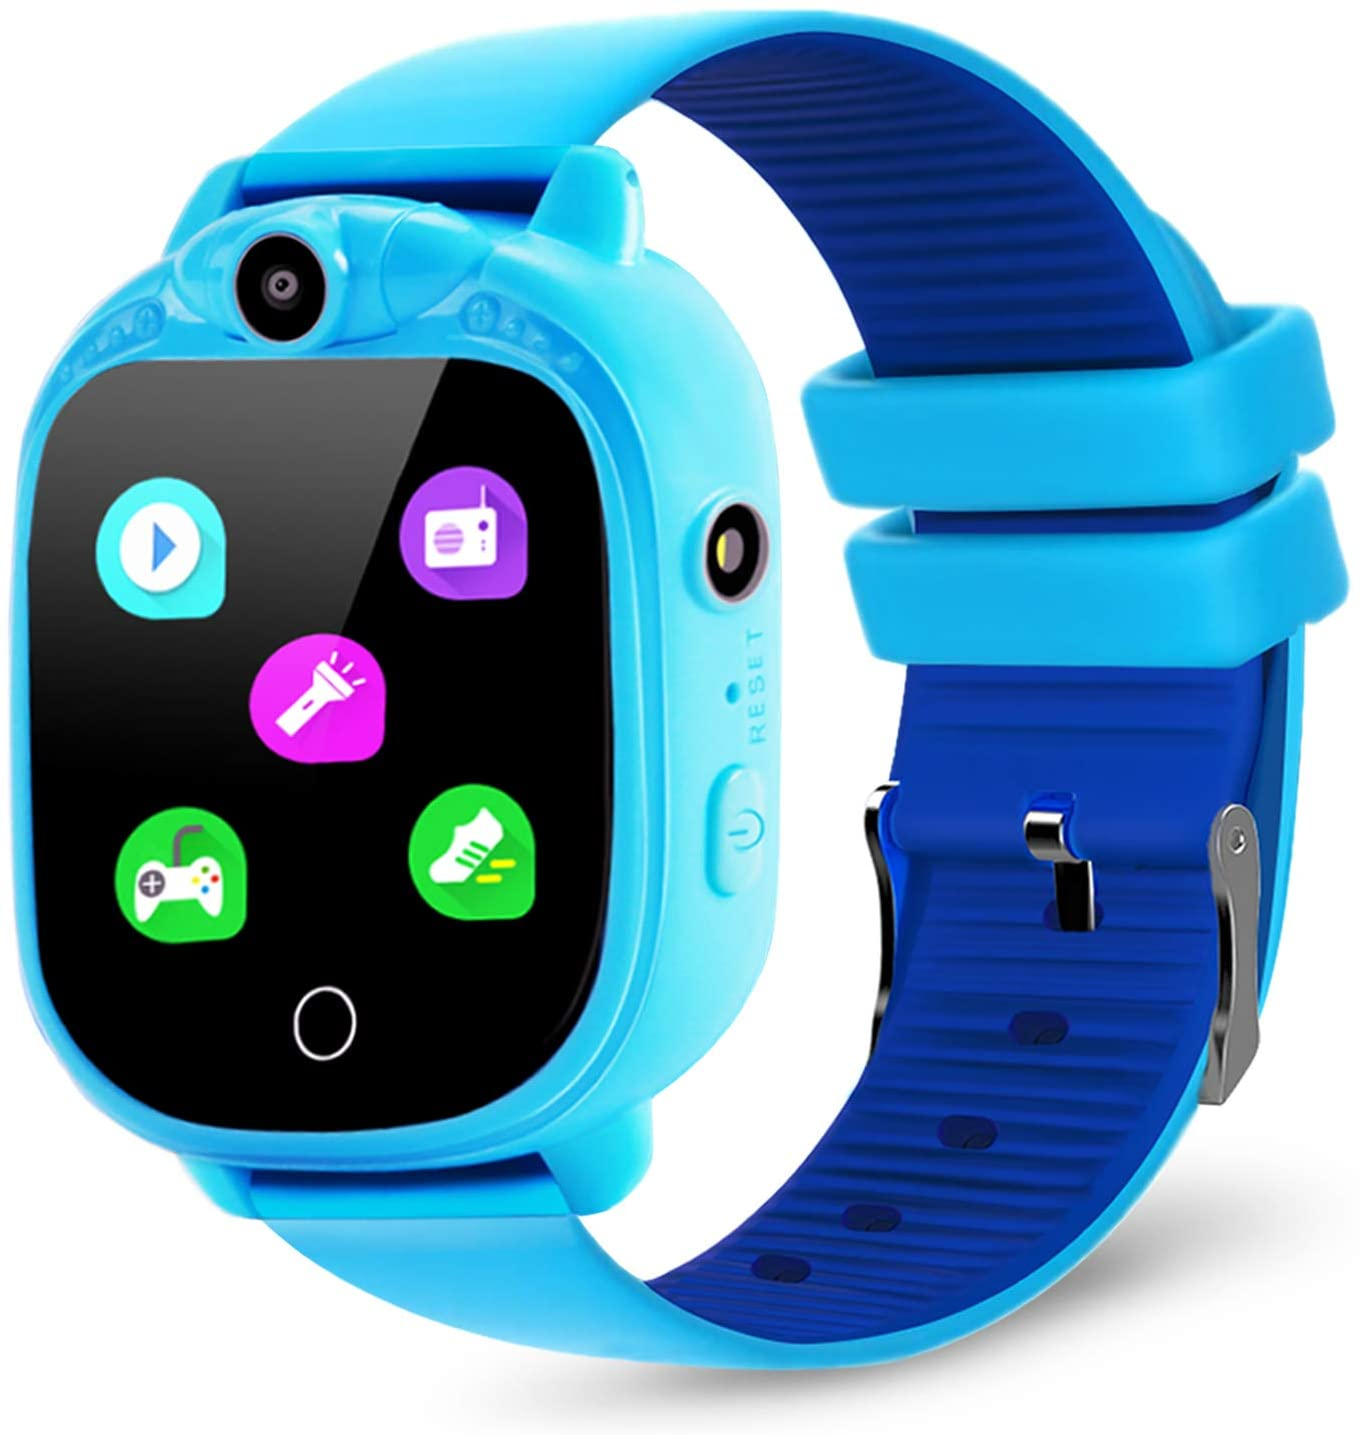 prograce kids smartwatch blue color, isolated on white background